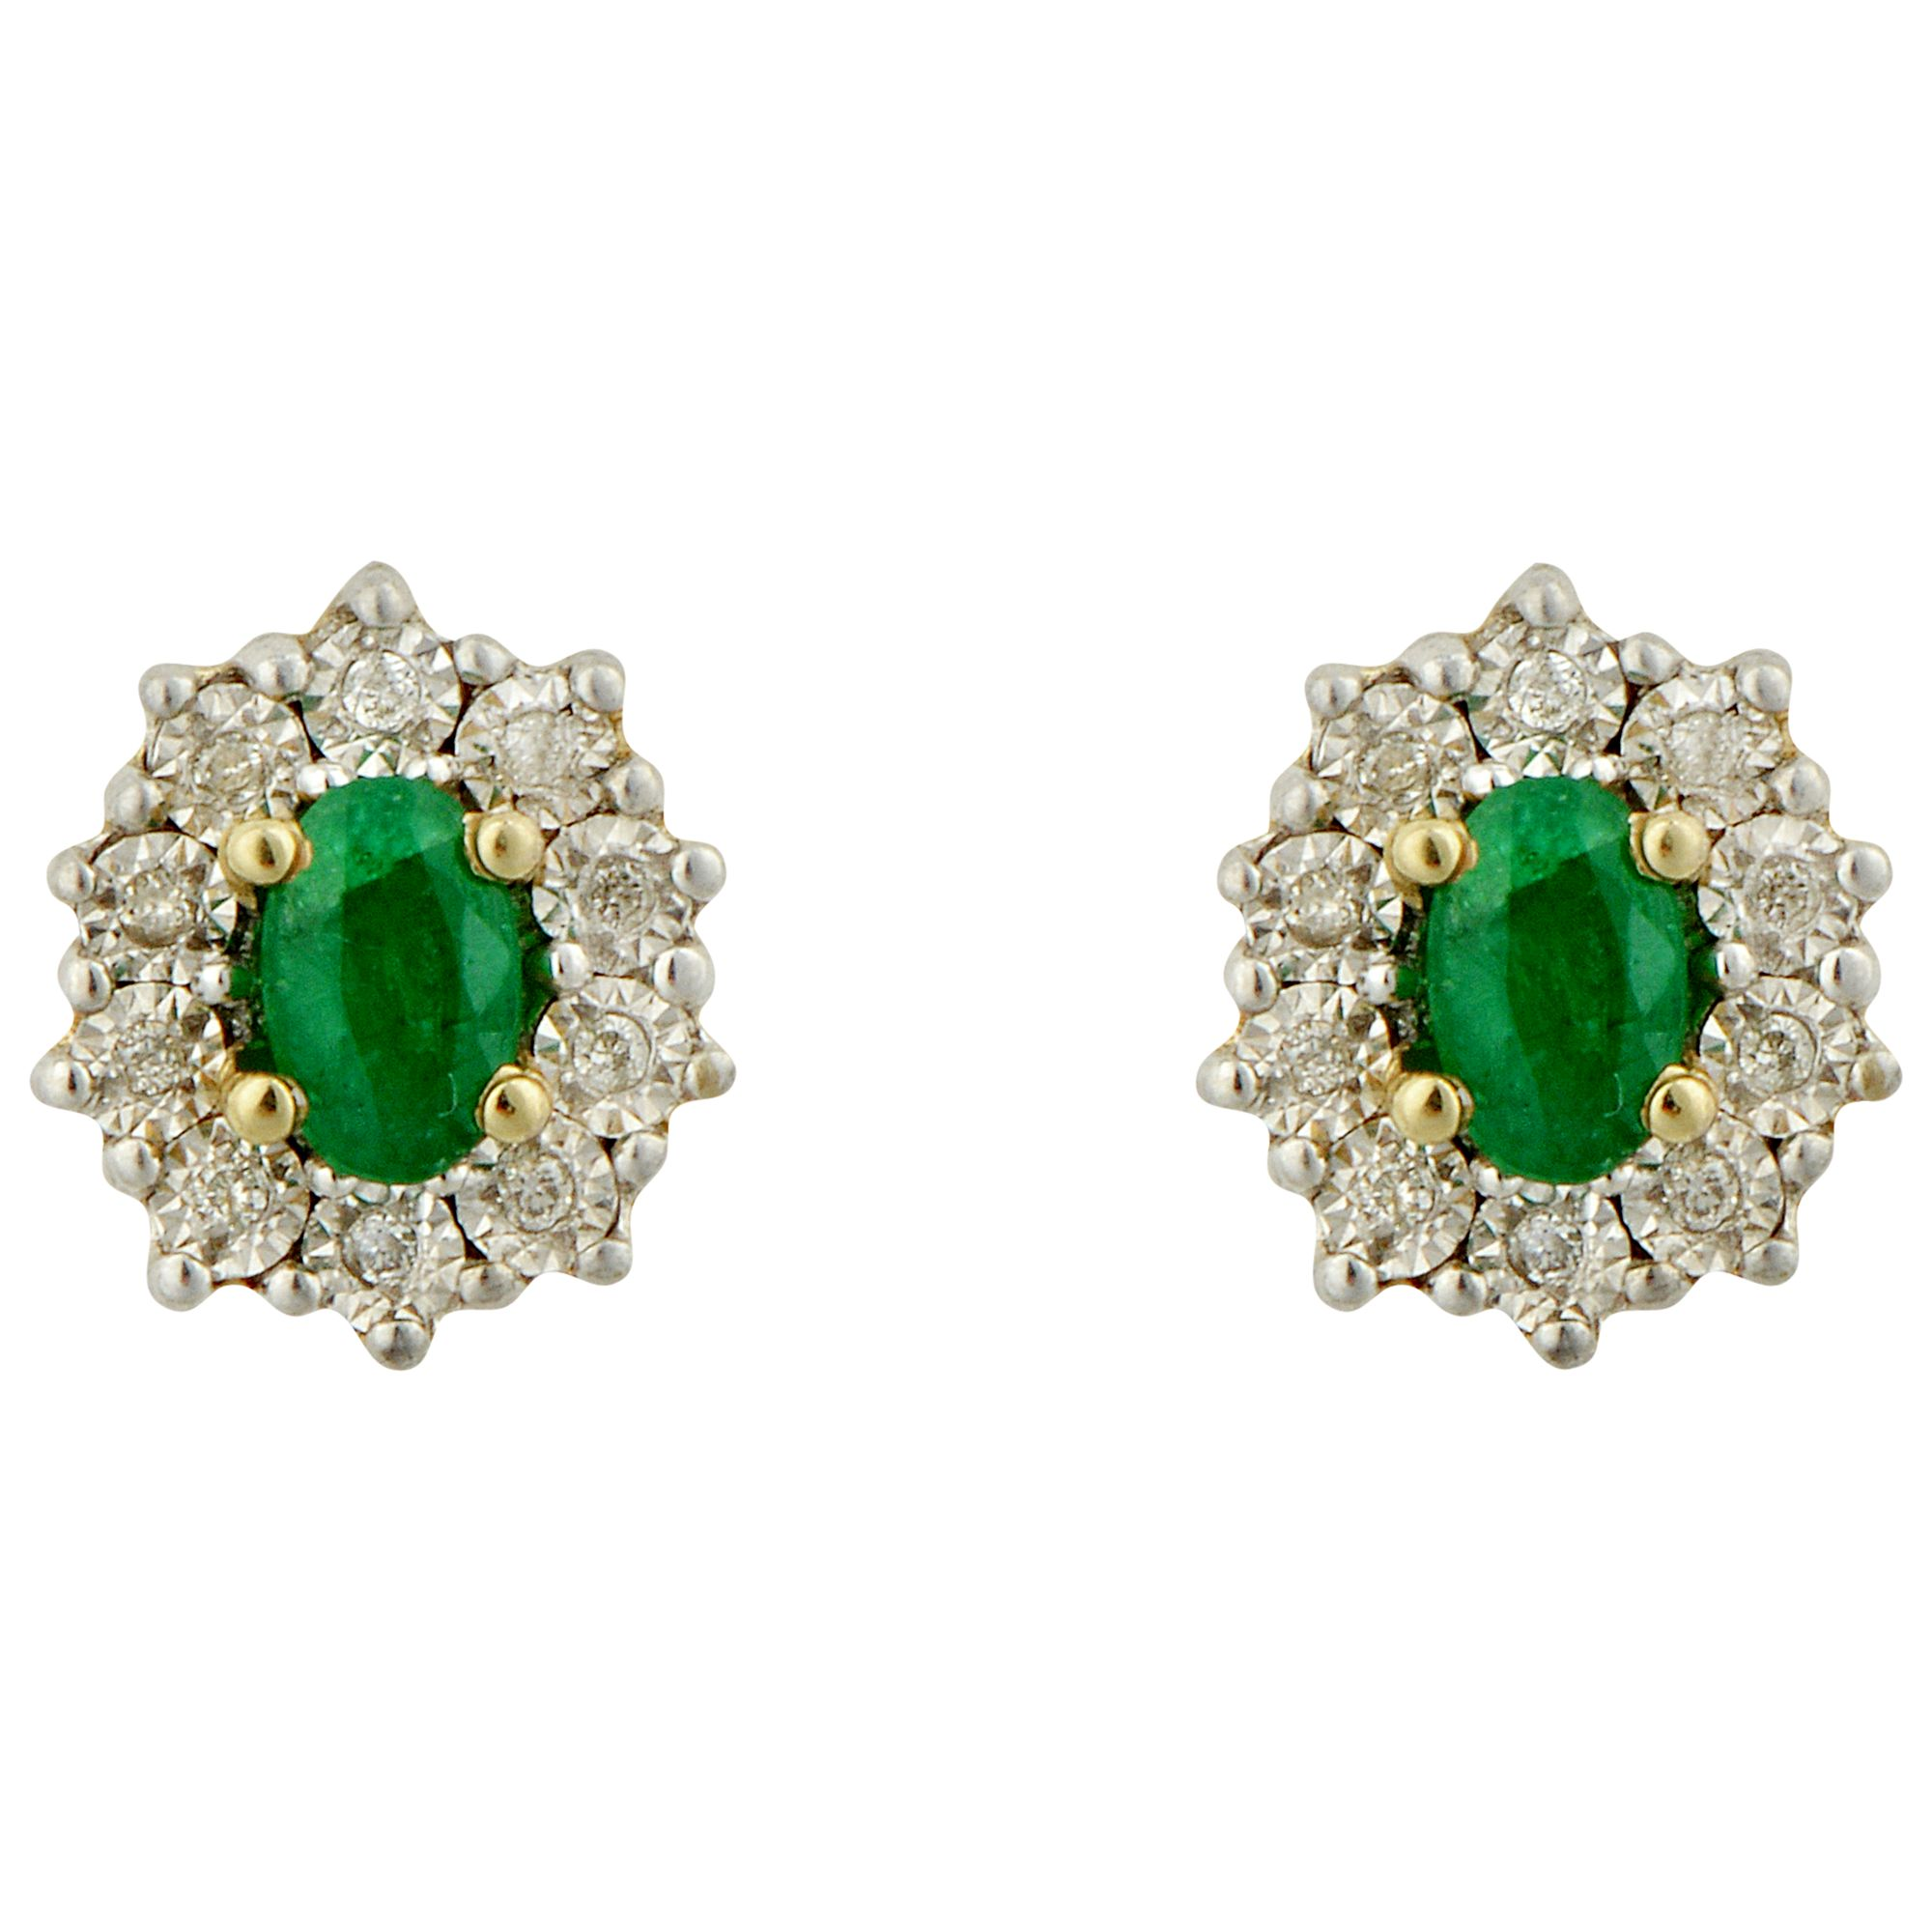 Sharon Mills 9ct Gold Diamond Emerald Stud Earrings